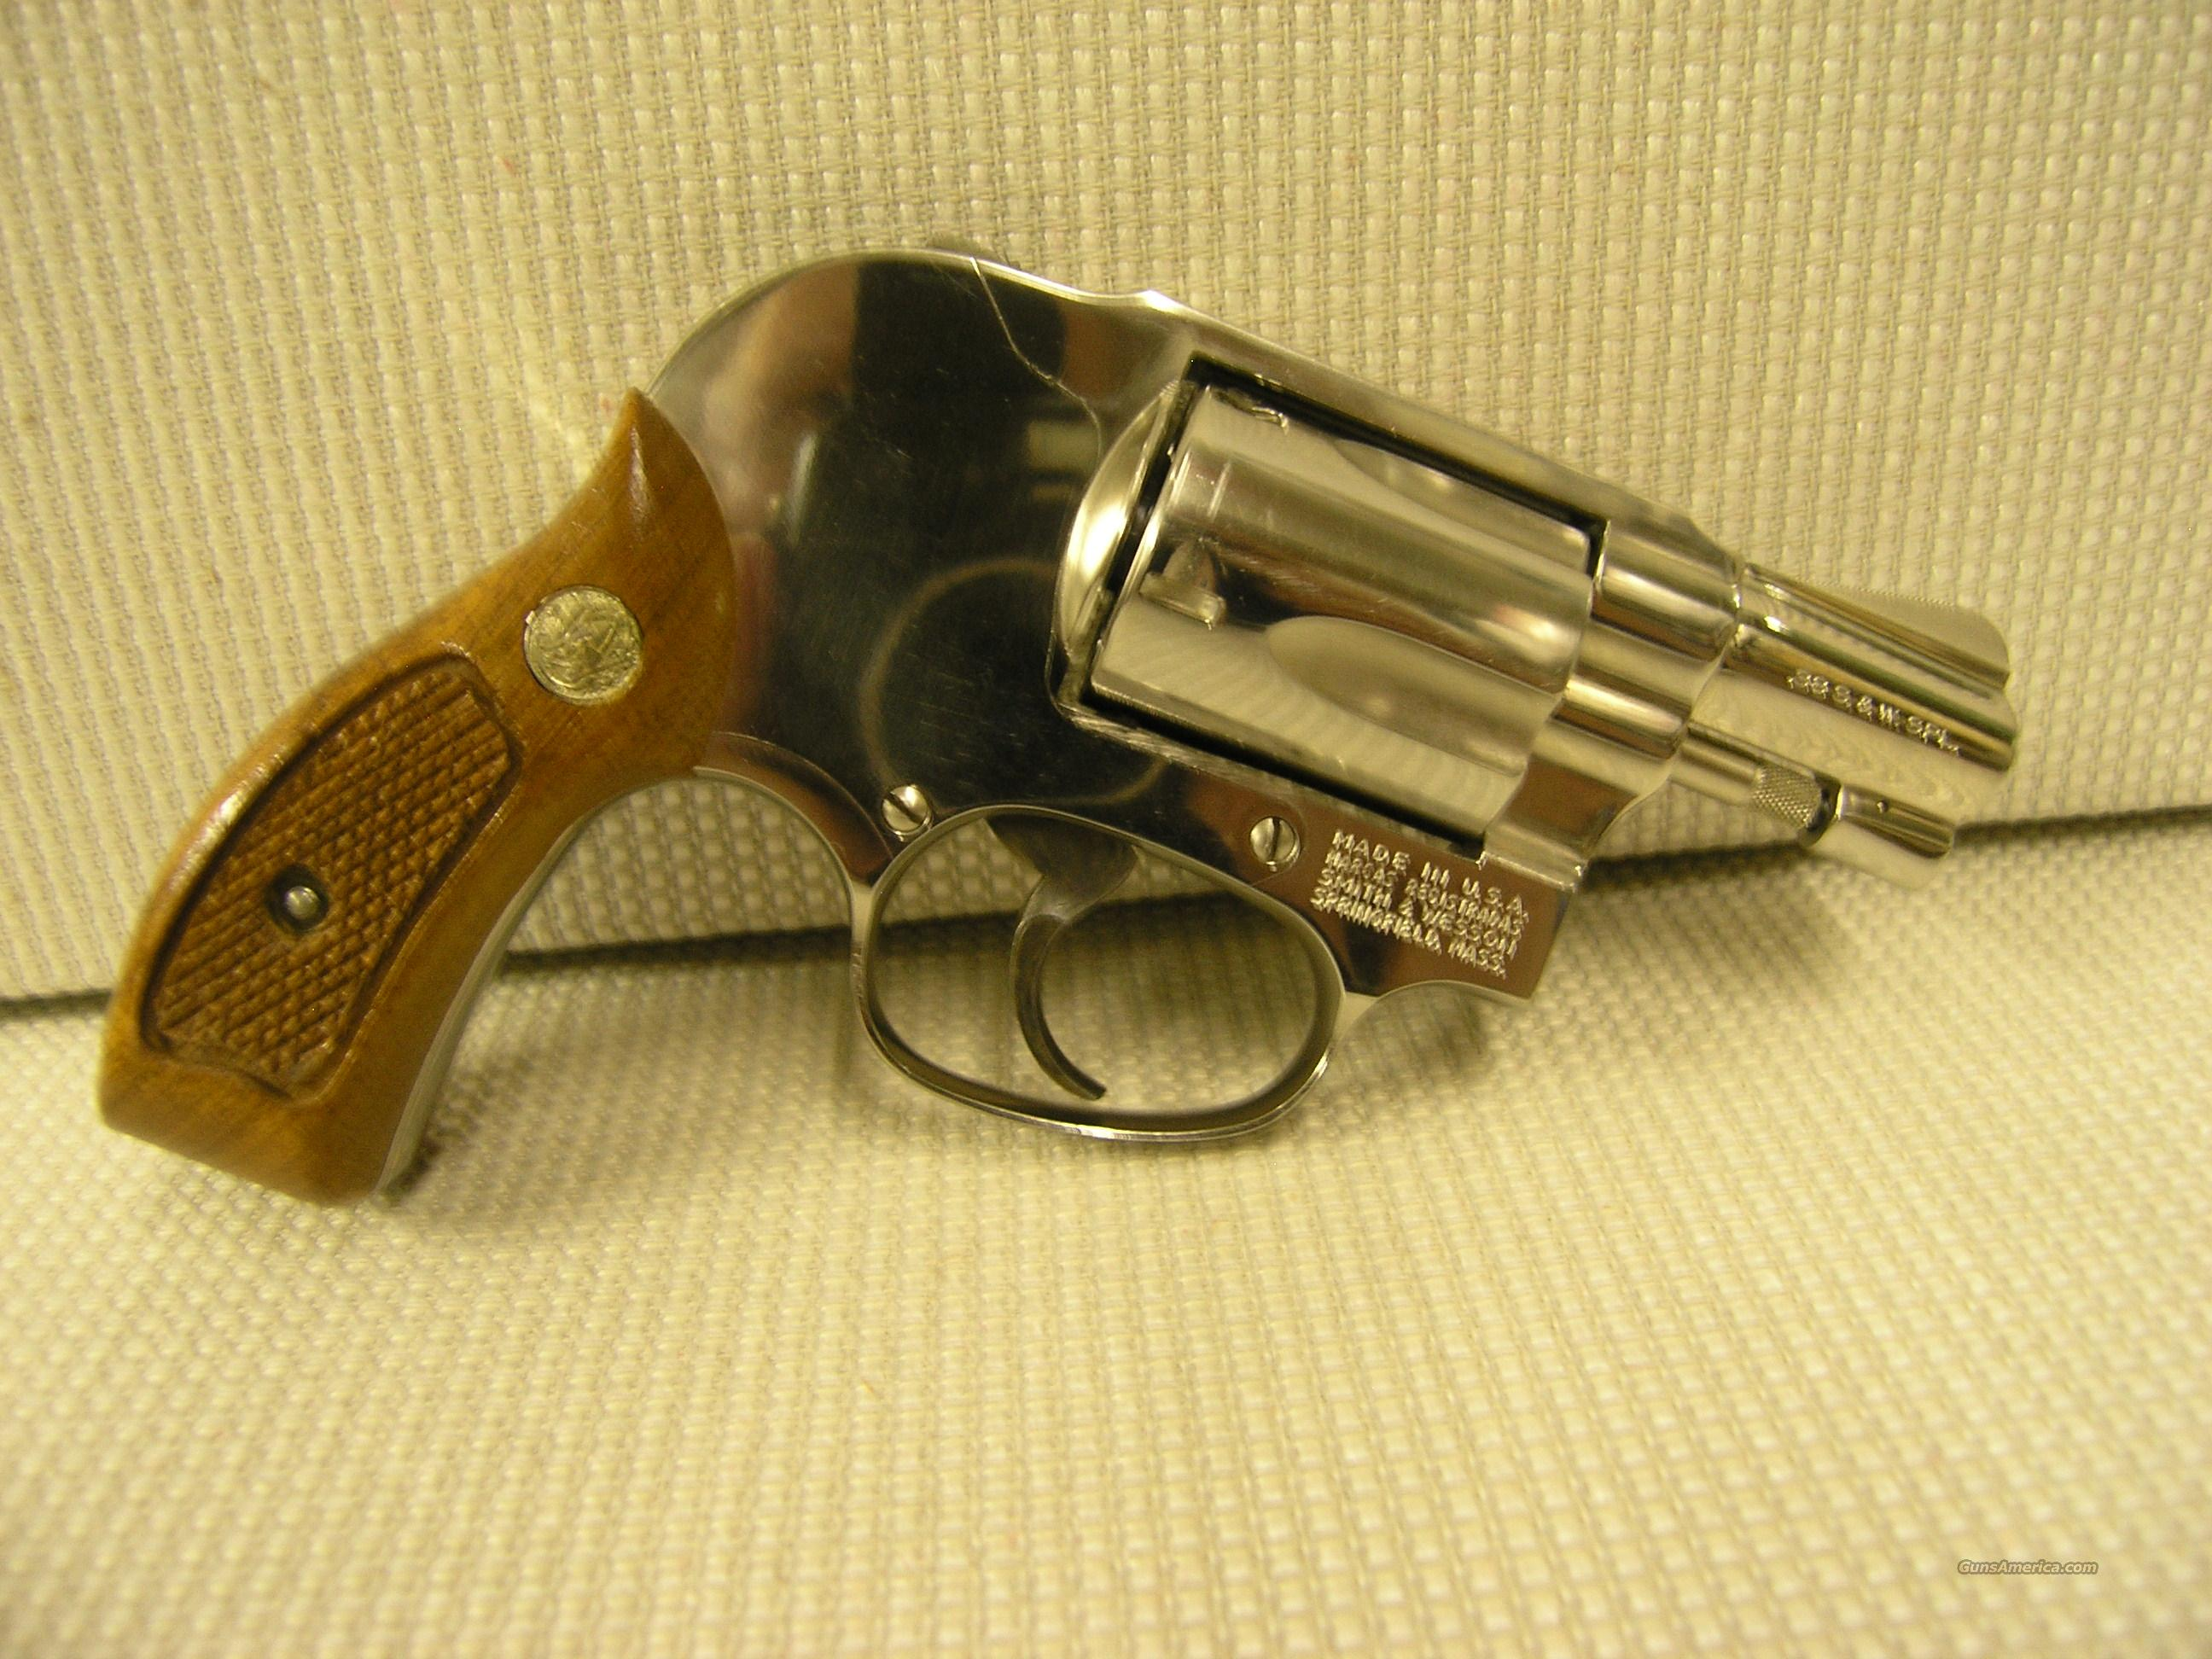 Smith & Wesson Model 49  Guns > Pistols > Smith & Wesson Revolvers > Pocket Pistols